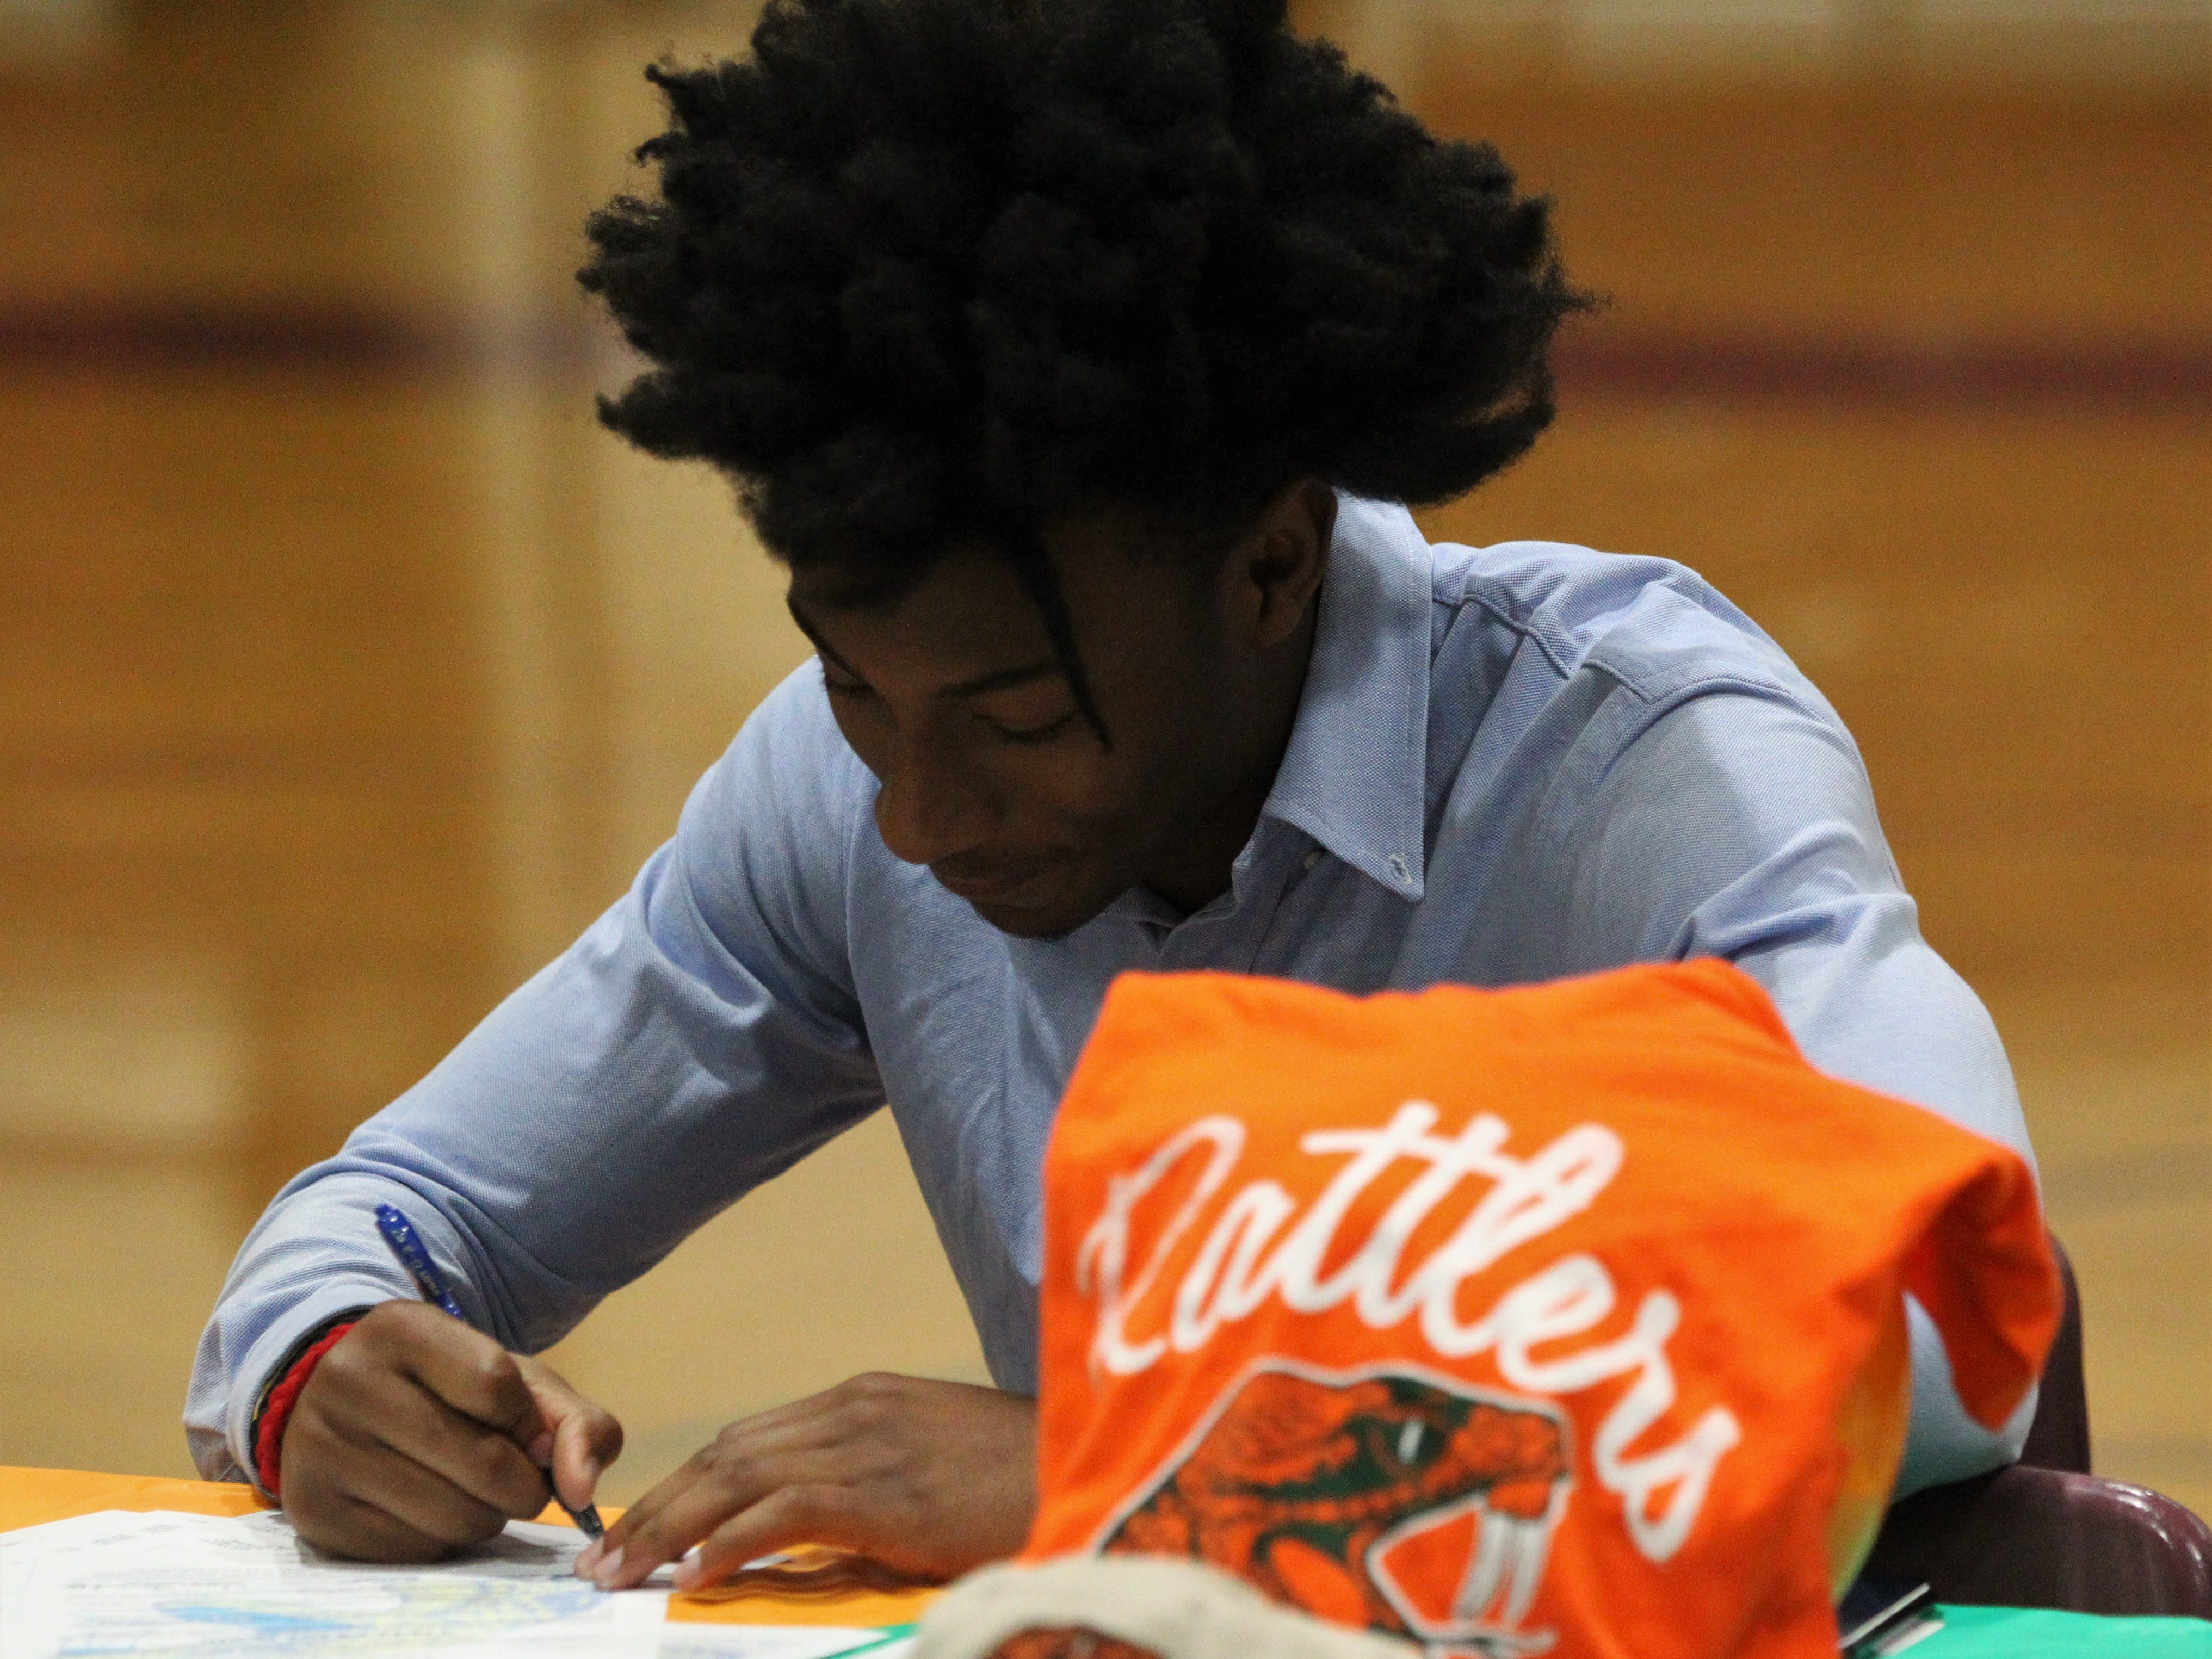 Florida High receiver Javan Morgan signed with Florida A&M during signing ceremonies on National Signing Day, Feb. 6, 2019.